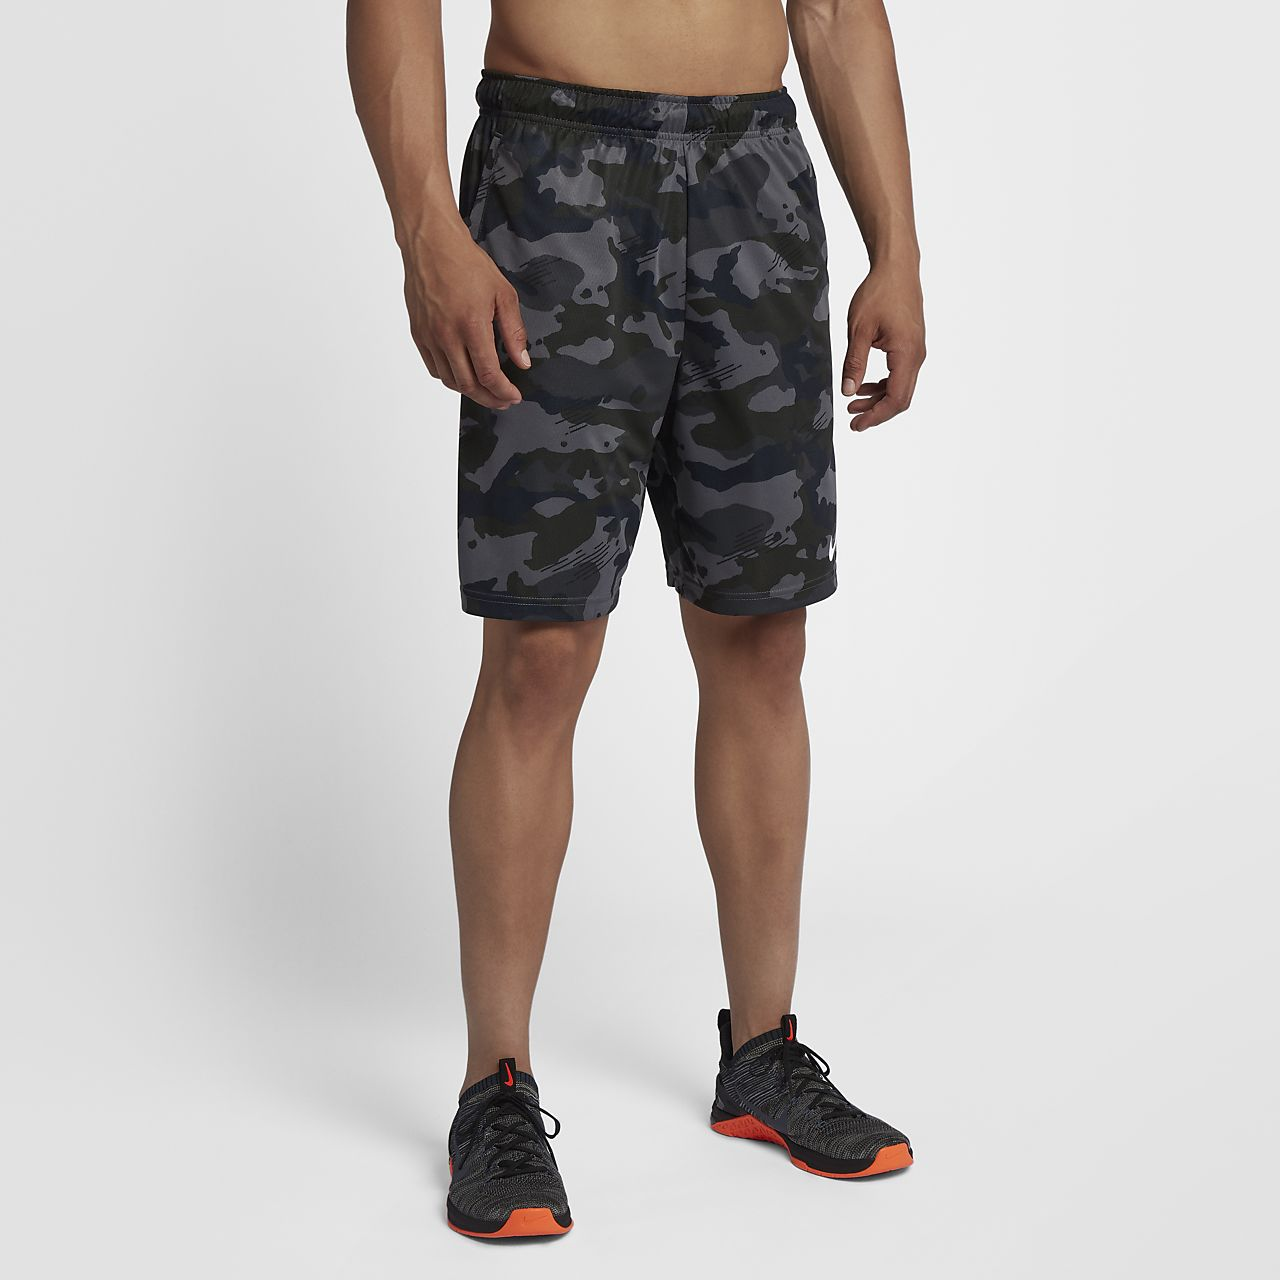 Nike Dri-FIT Men s Knit Camo Training Shorts. Nike.com HU 7af518ad2